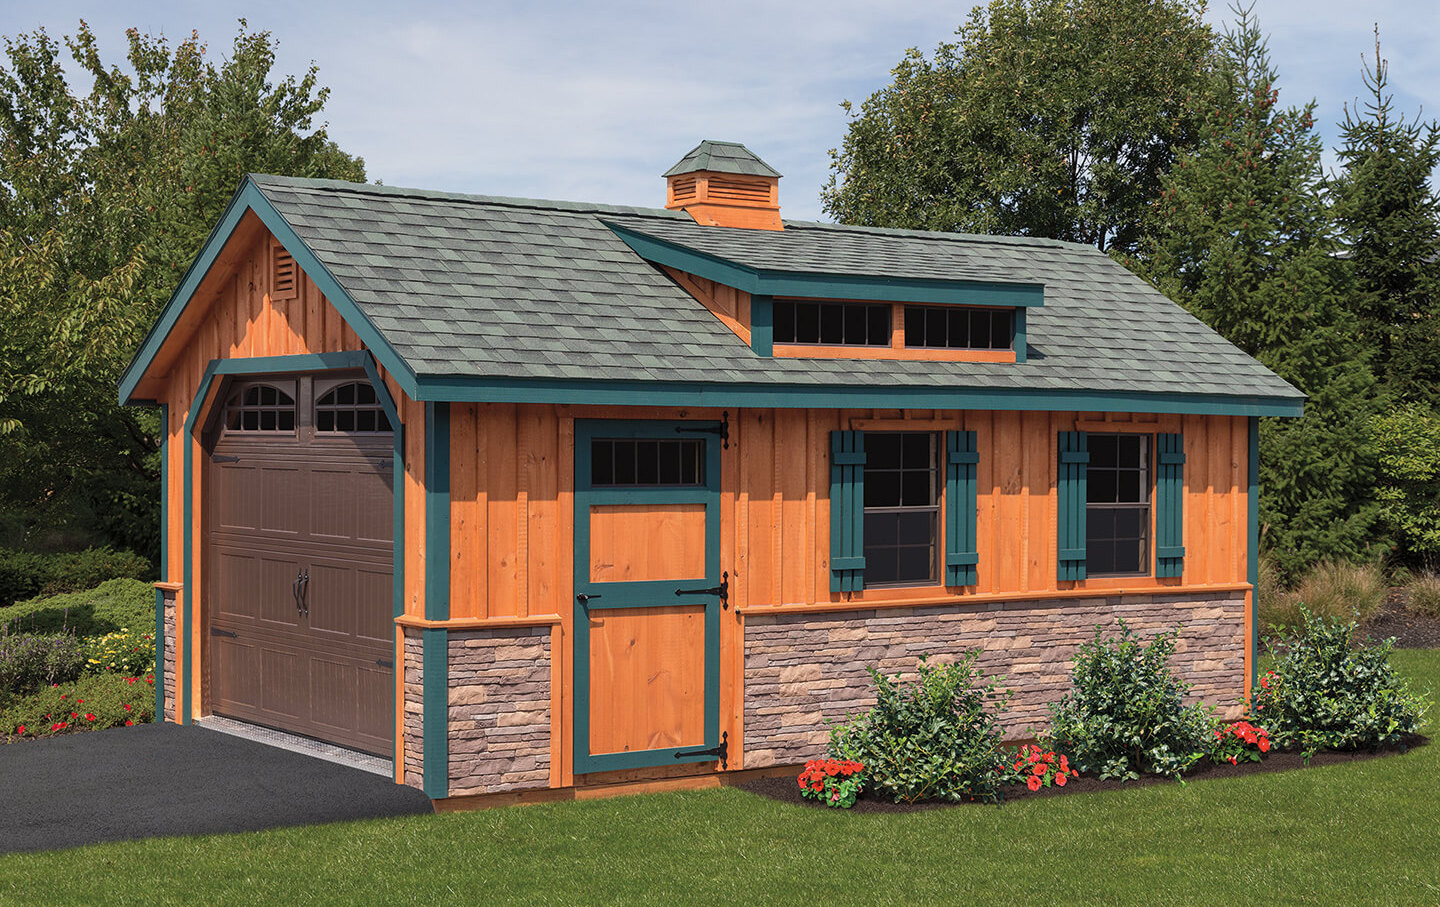 Wooden storage garage in Medford NY.